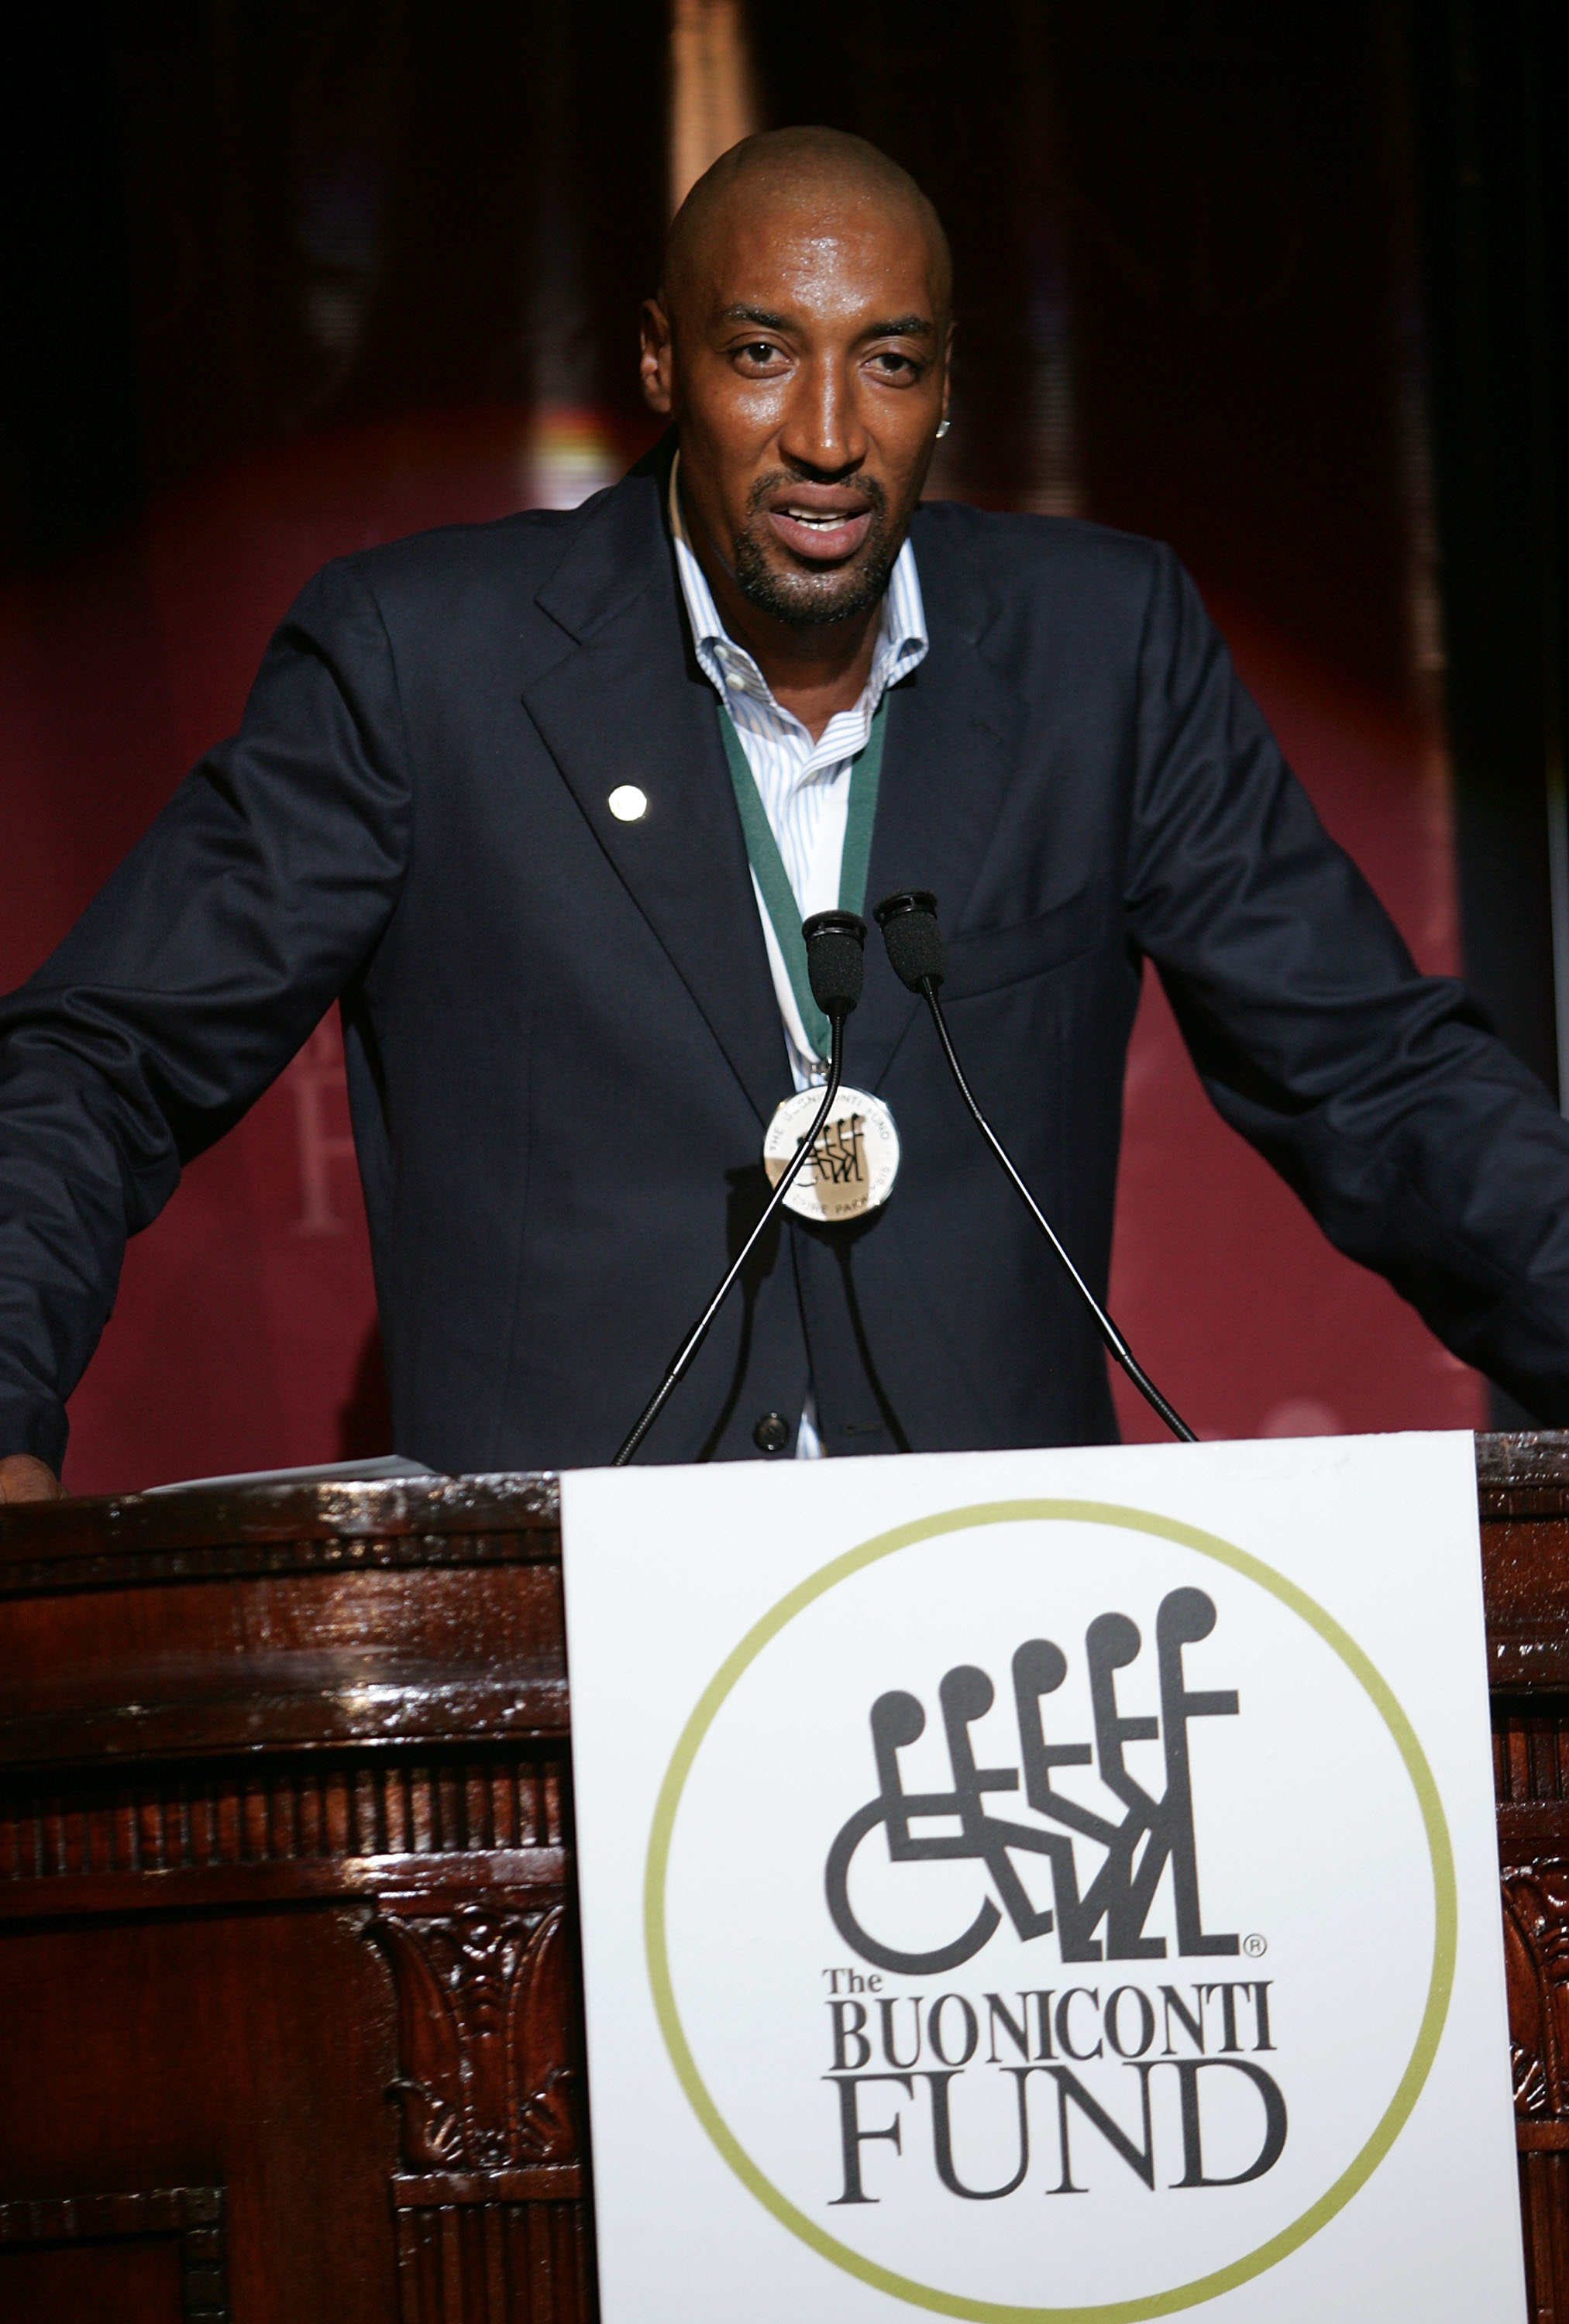 NEW YORK - SEPTEMBER 22:  Scottie Pippen speaks during the 23rd Annual Great Sports Legends Dinner to Cure Paralysis at the Waldorf Astoria on September 22, 2008 in New York City.  (Photo by Thos Robinson/Getty Images for The Miami Project)